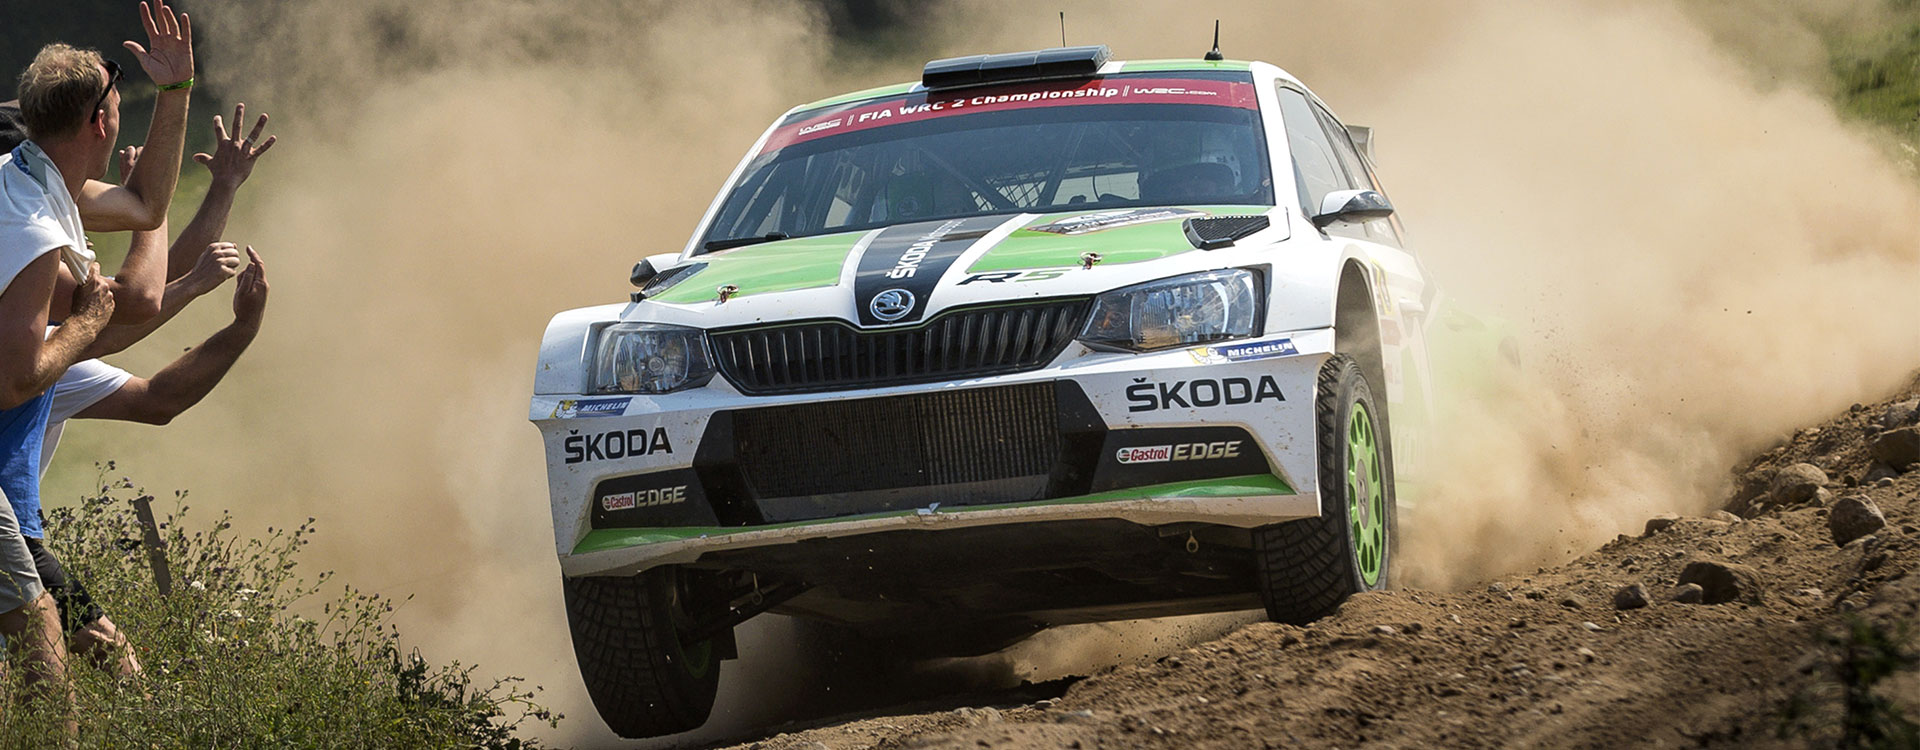 Thrilling battle in Poland: Lappi takes the lead in the ŠKODA duel